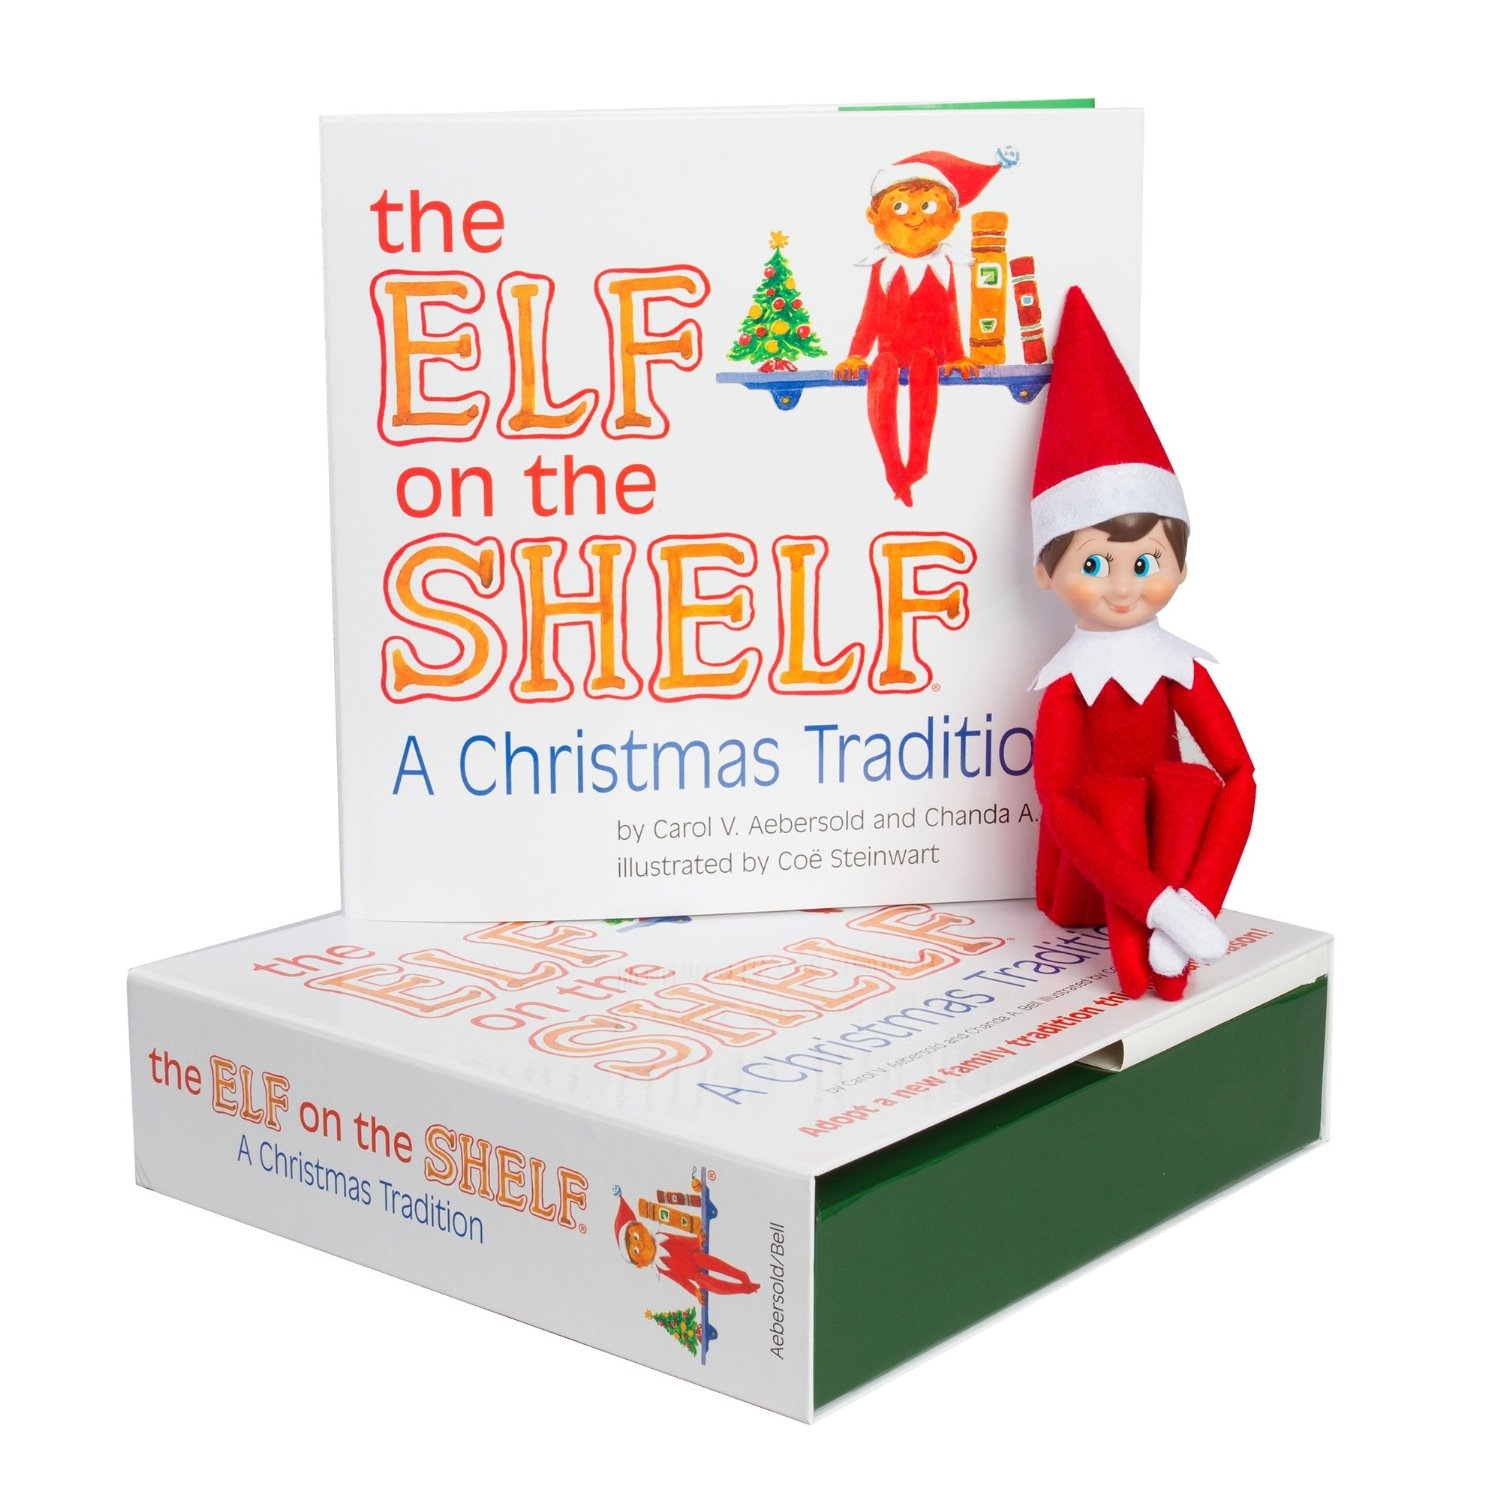 Elf on the Shelf converts a hater into a believer